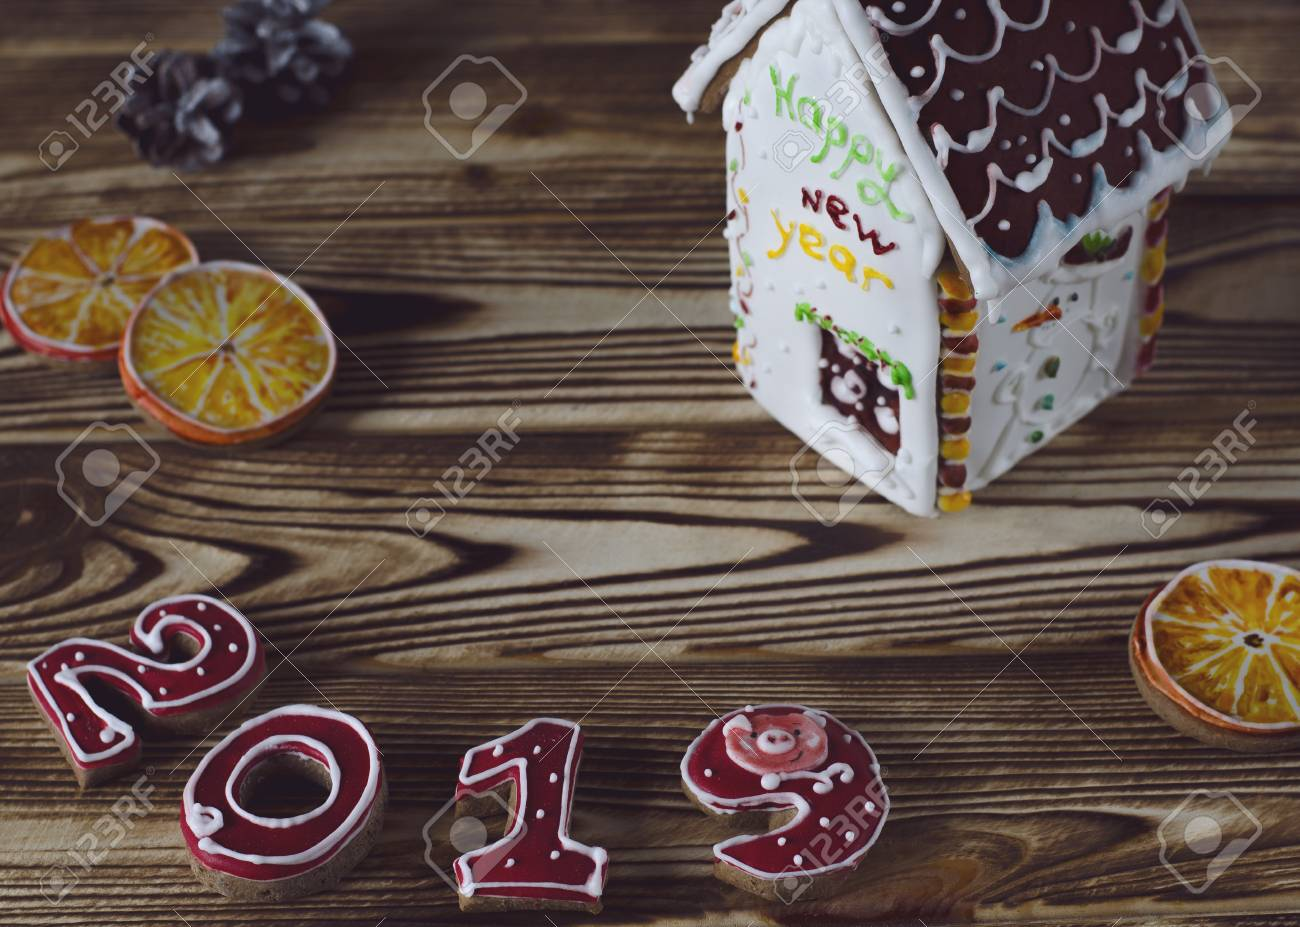 2019 White House Christmas Card.Christmas Card On Wood Background Gingerbread Red Numbers 2019